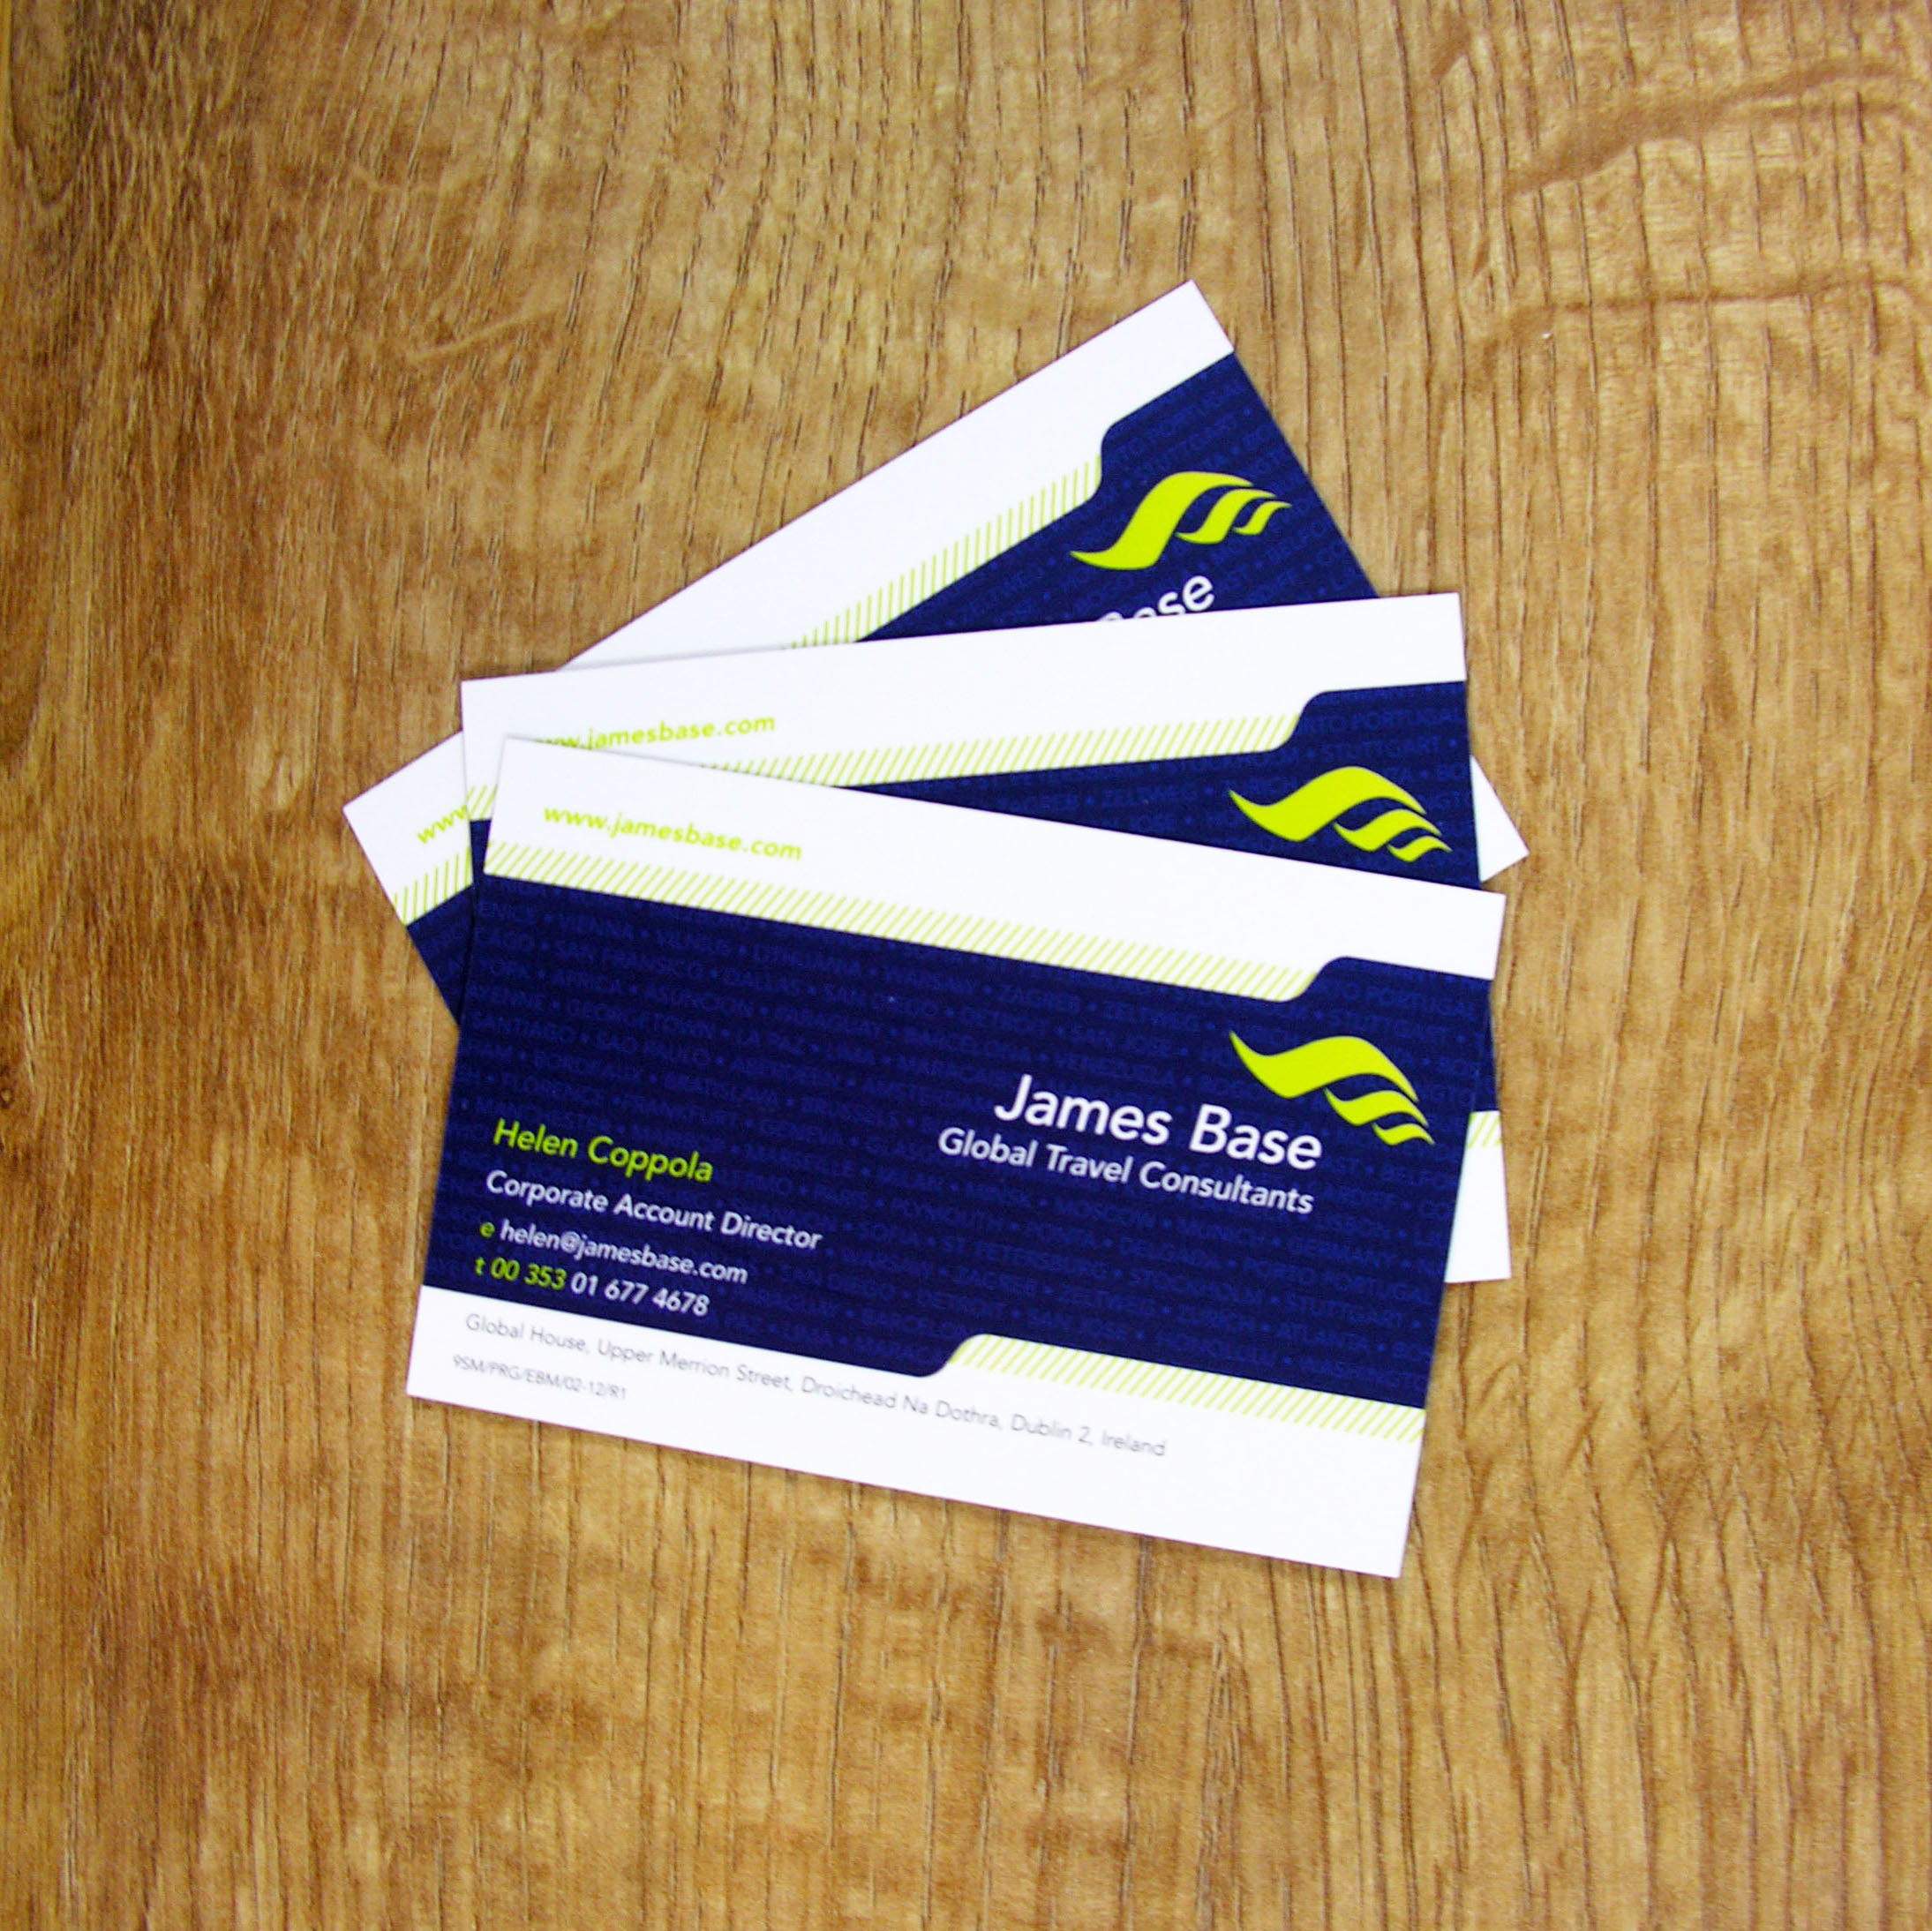 Laminated business cards colour company southampton laminated business cards colourmoves Image collections